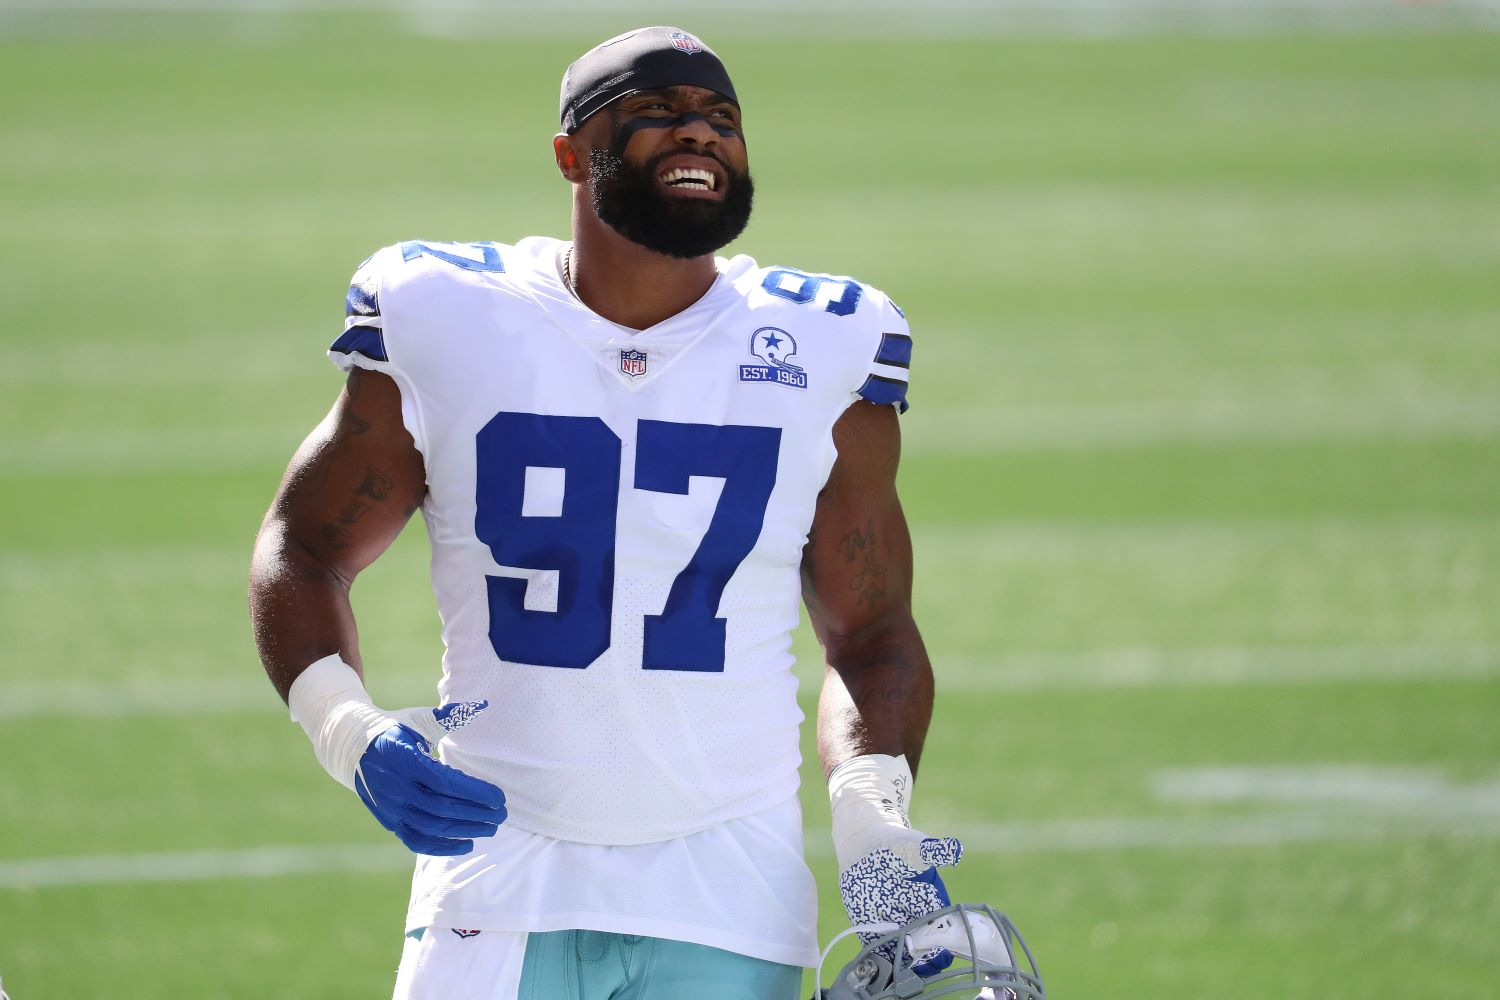 The Cowboys just sent a $6 million warning sign that their season's over. What should Dallas expect back in a trade for Everson Griffen?